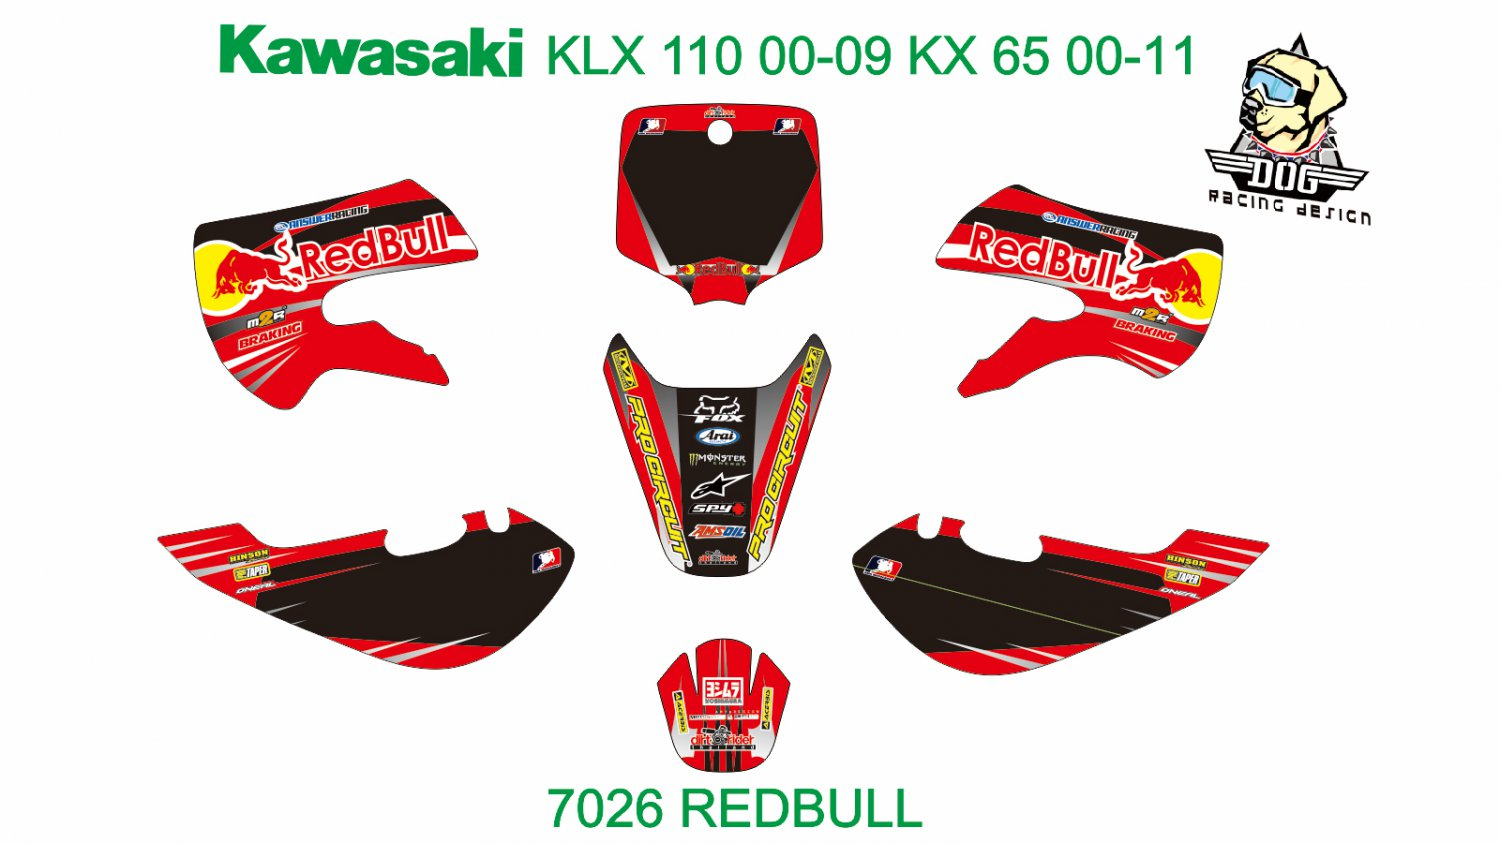 KAWASAKI KLX 110 2000-2009 KX 65 2000-2011 GRAPHIC DECAL KIT CODE.7026